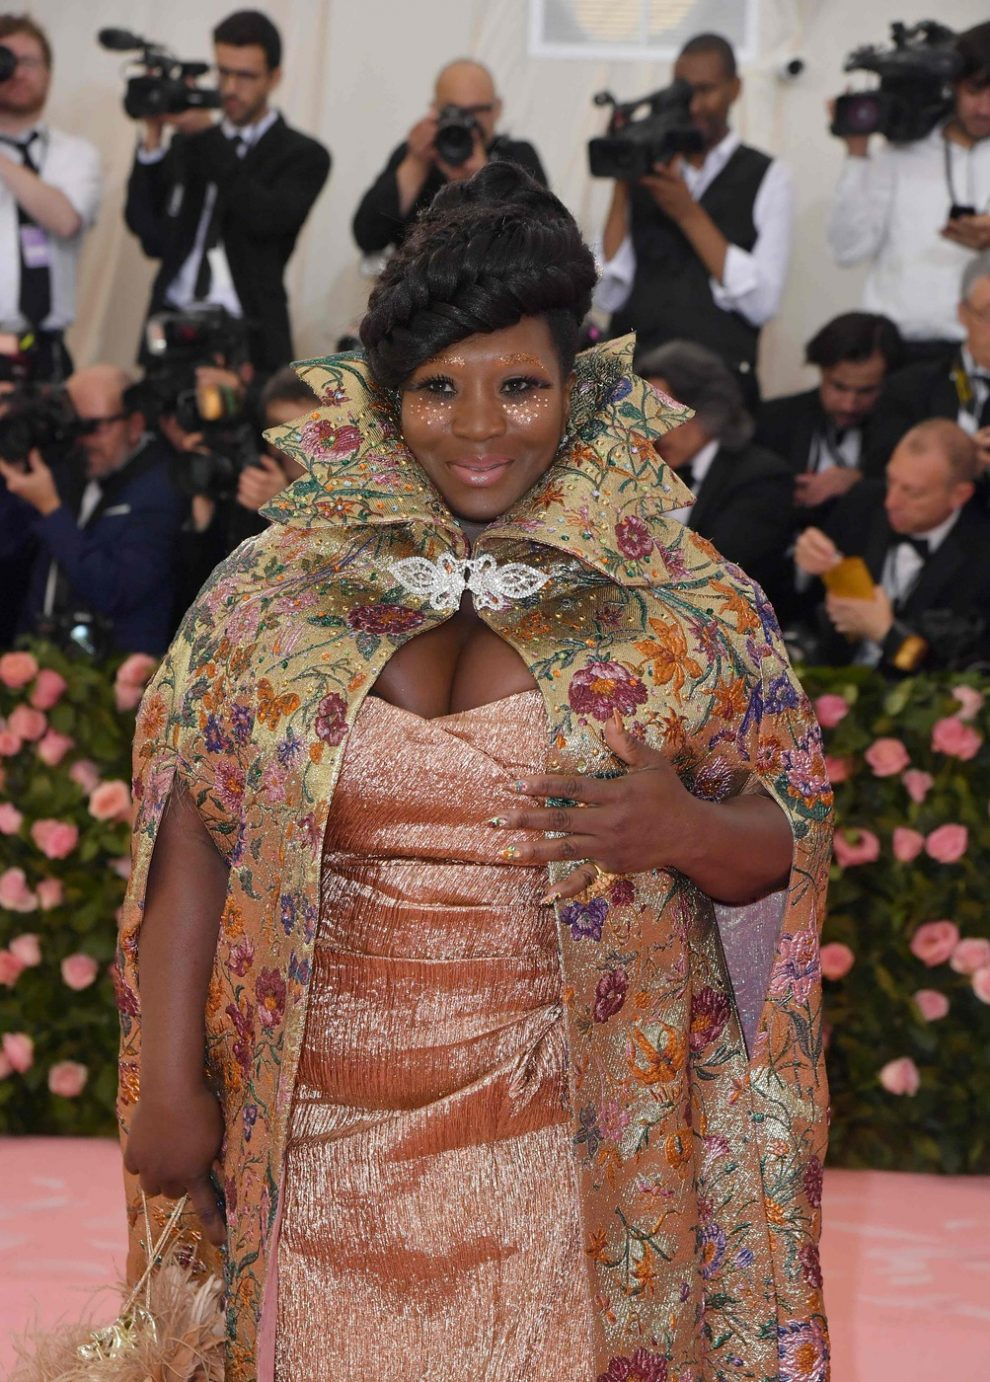 US television personality Bevy Smith arrives for the 2019 Met Gala